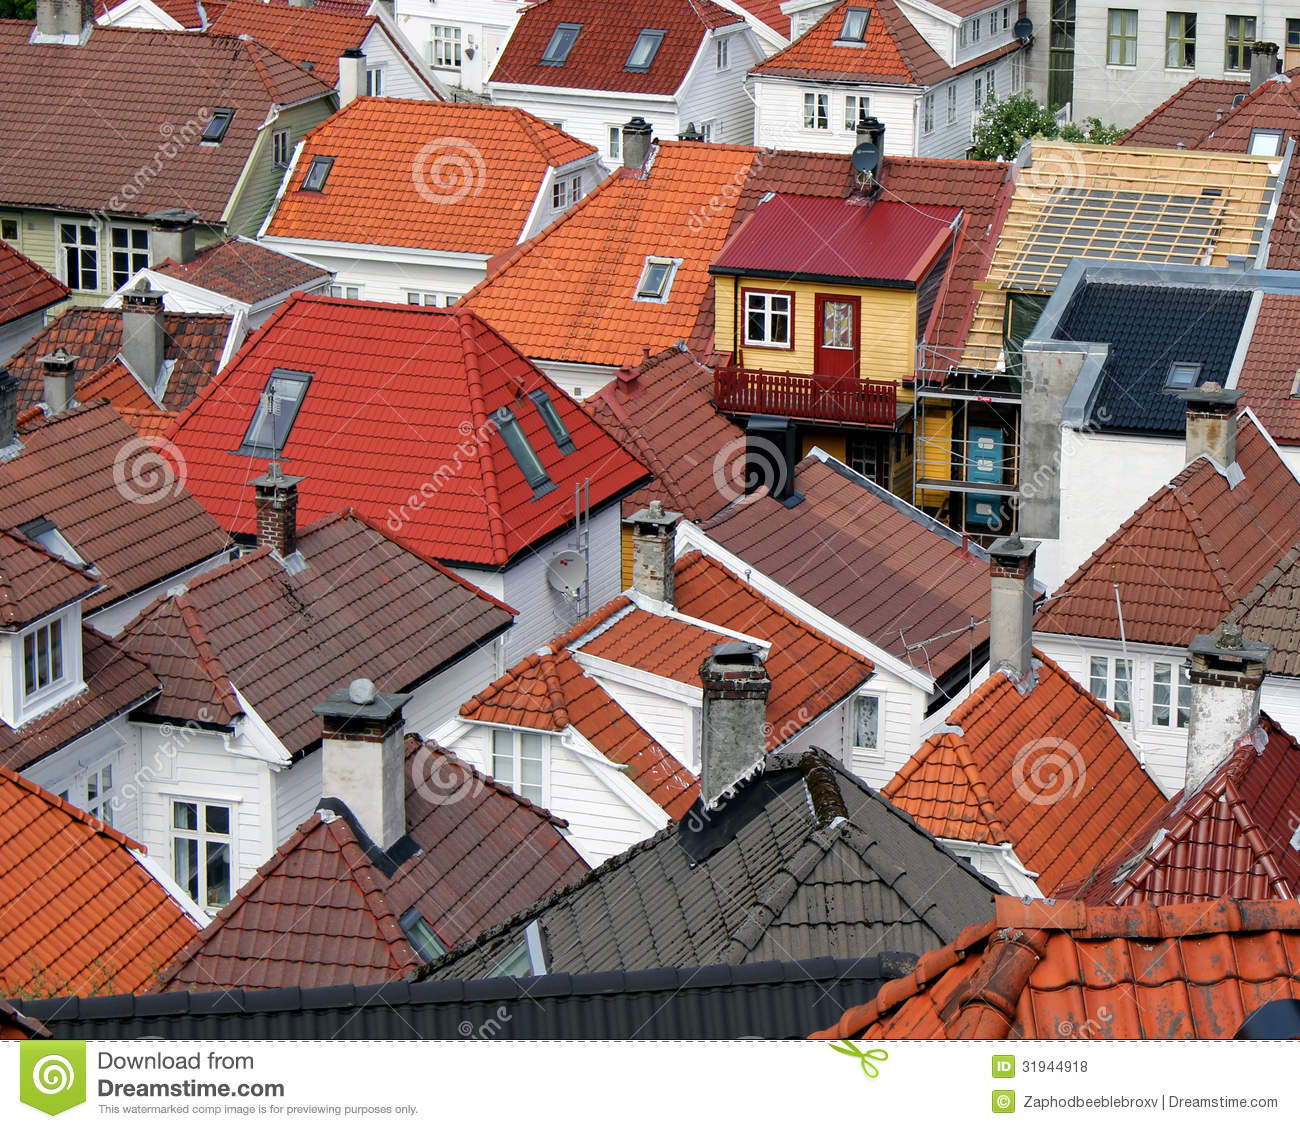 Roofs tiles wooden houses royalty free stock photos image 31944918 - Houses with ceramic tile roofing ...